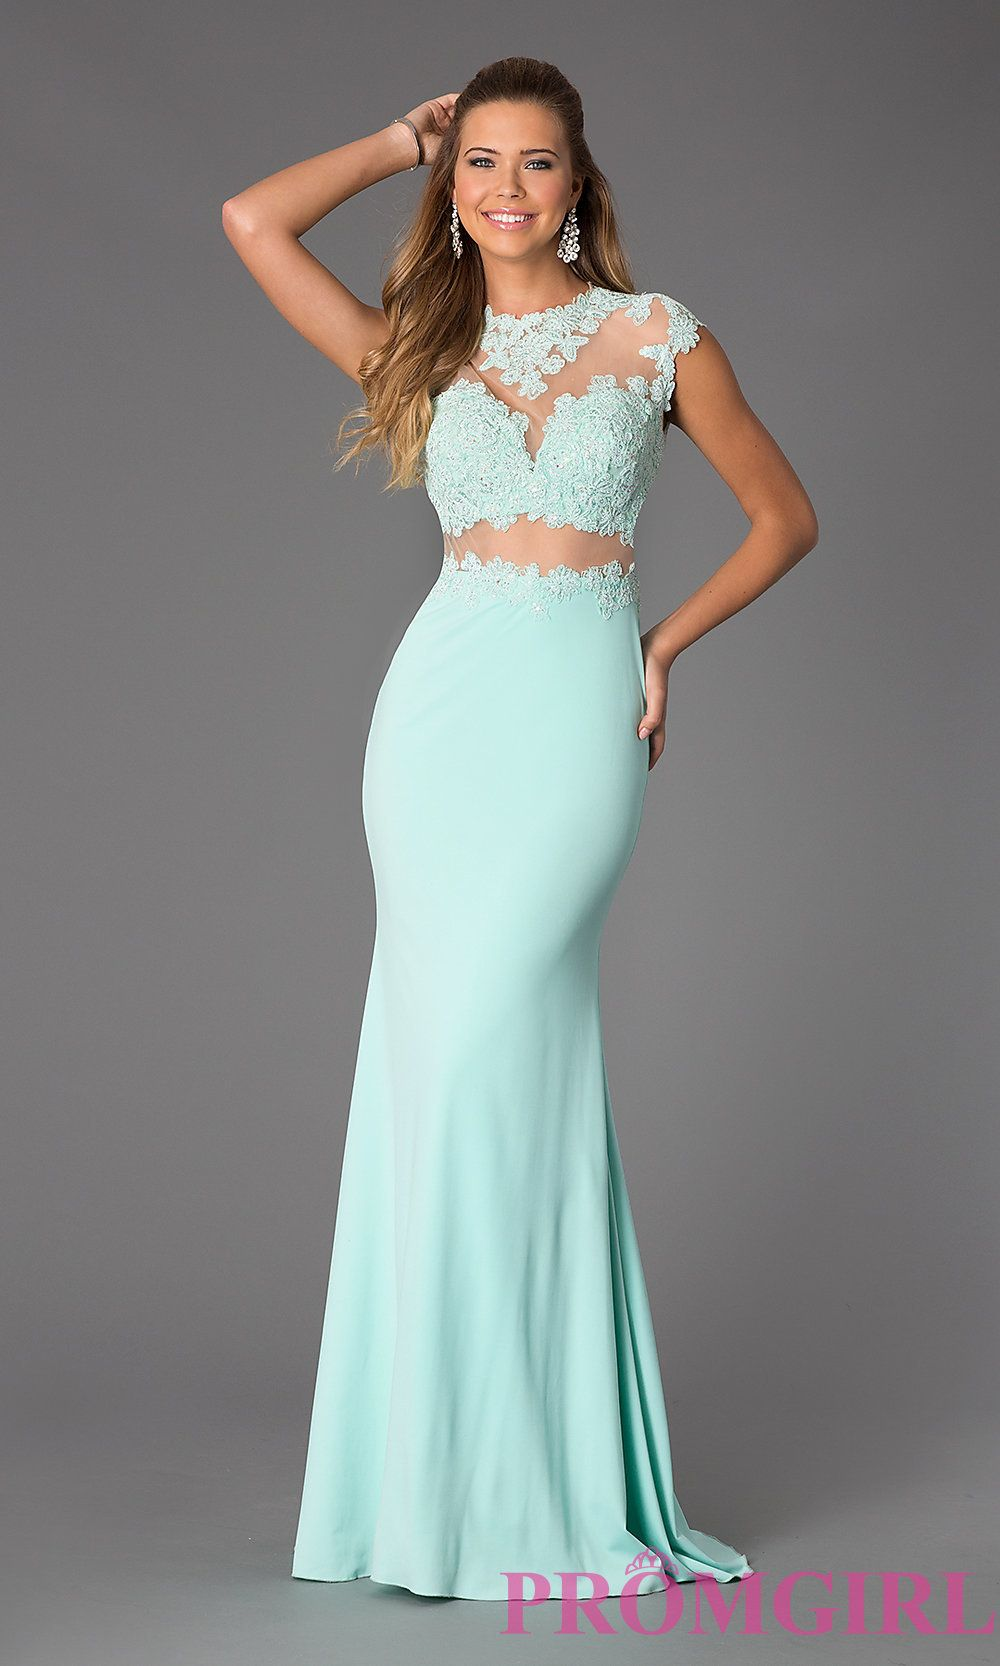 1000  images about prom on Pinterest | Long prom dresses, Plus ...